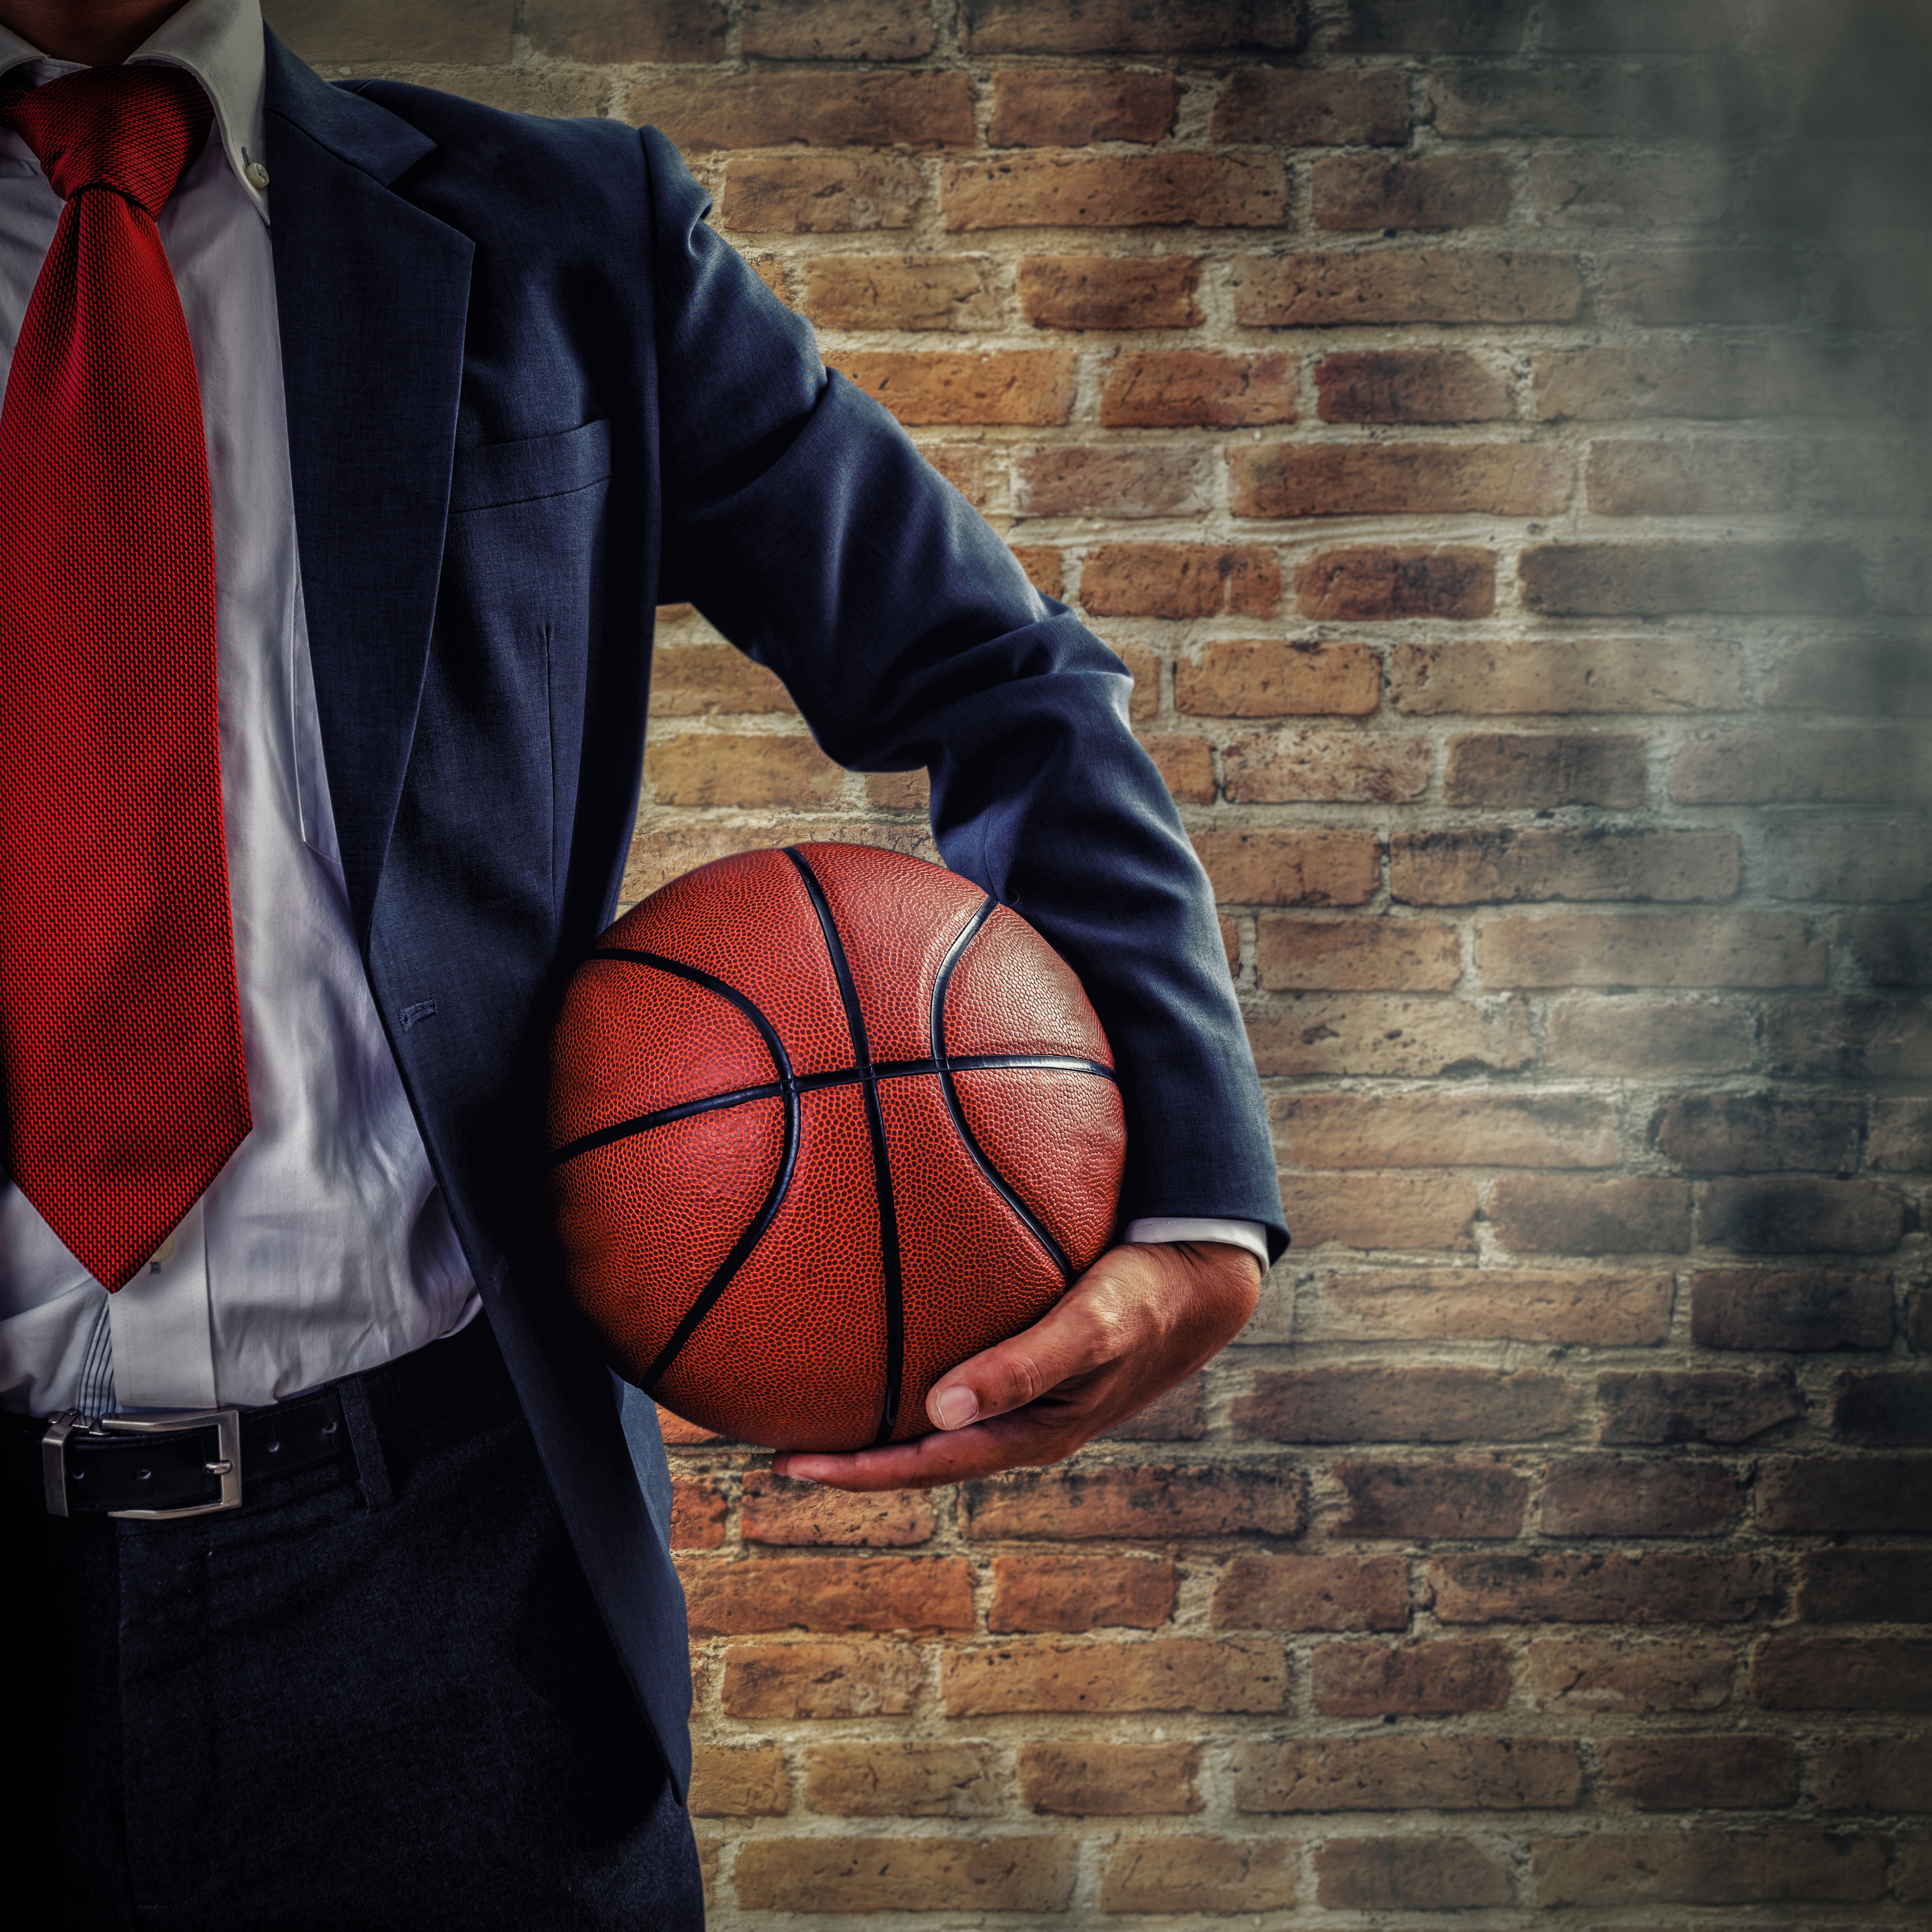 There are many rewarding and lucrative career tracks for those who earn an MBA in Sport Business.